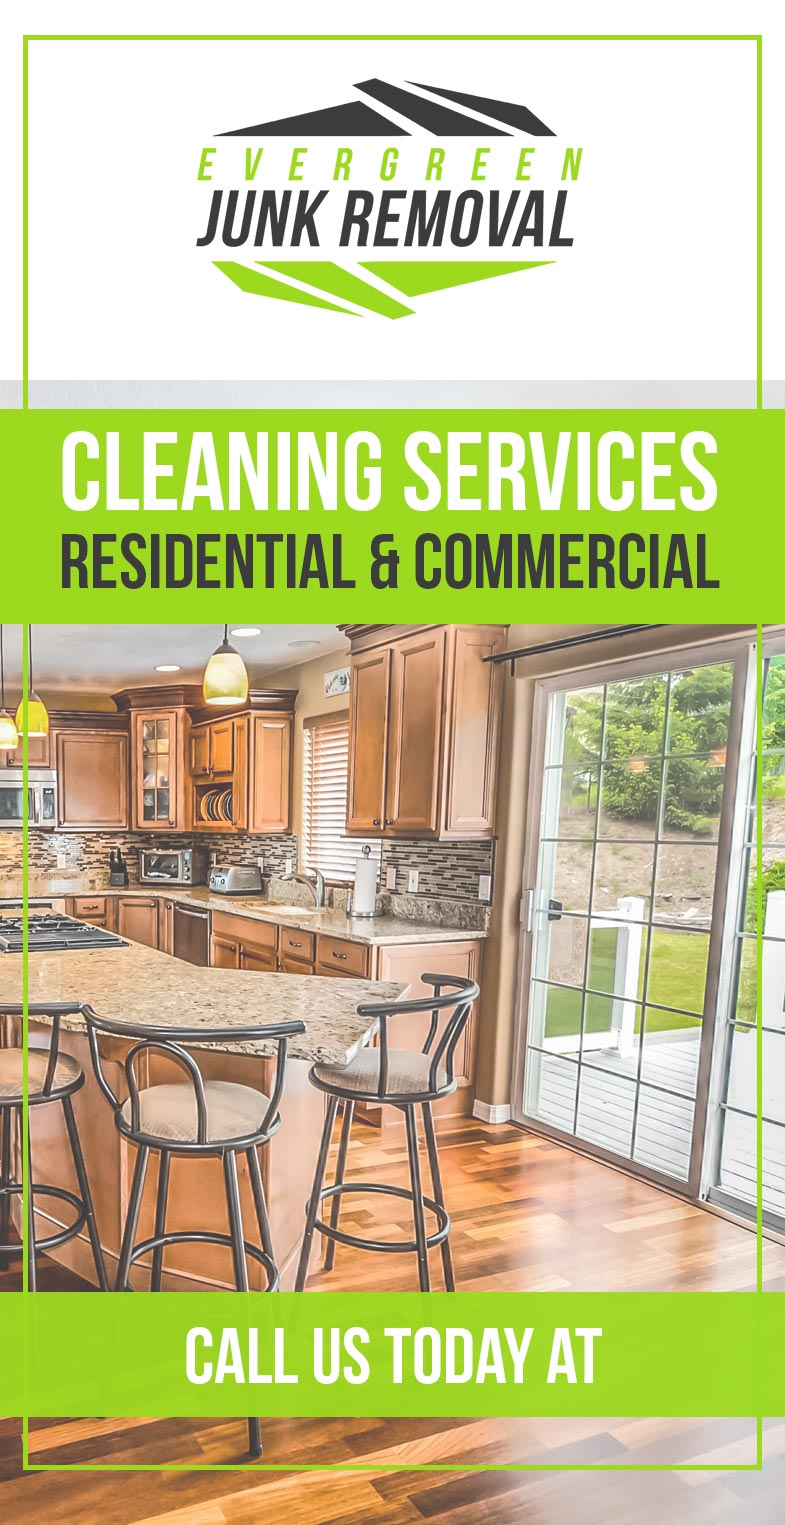 Franklin Park Cleaning Companies